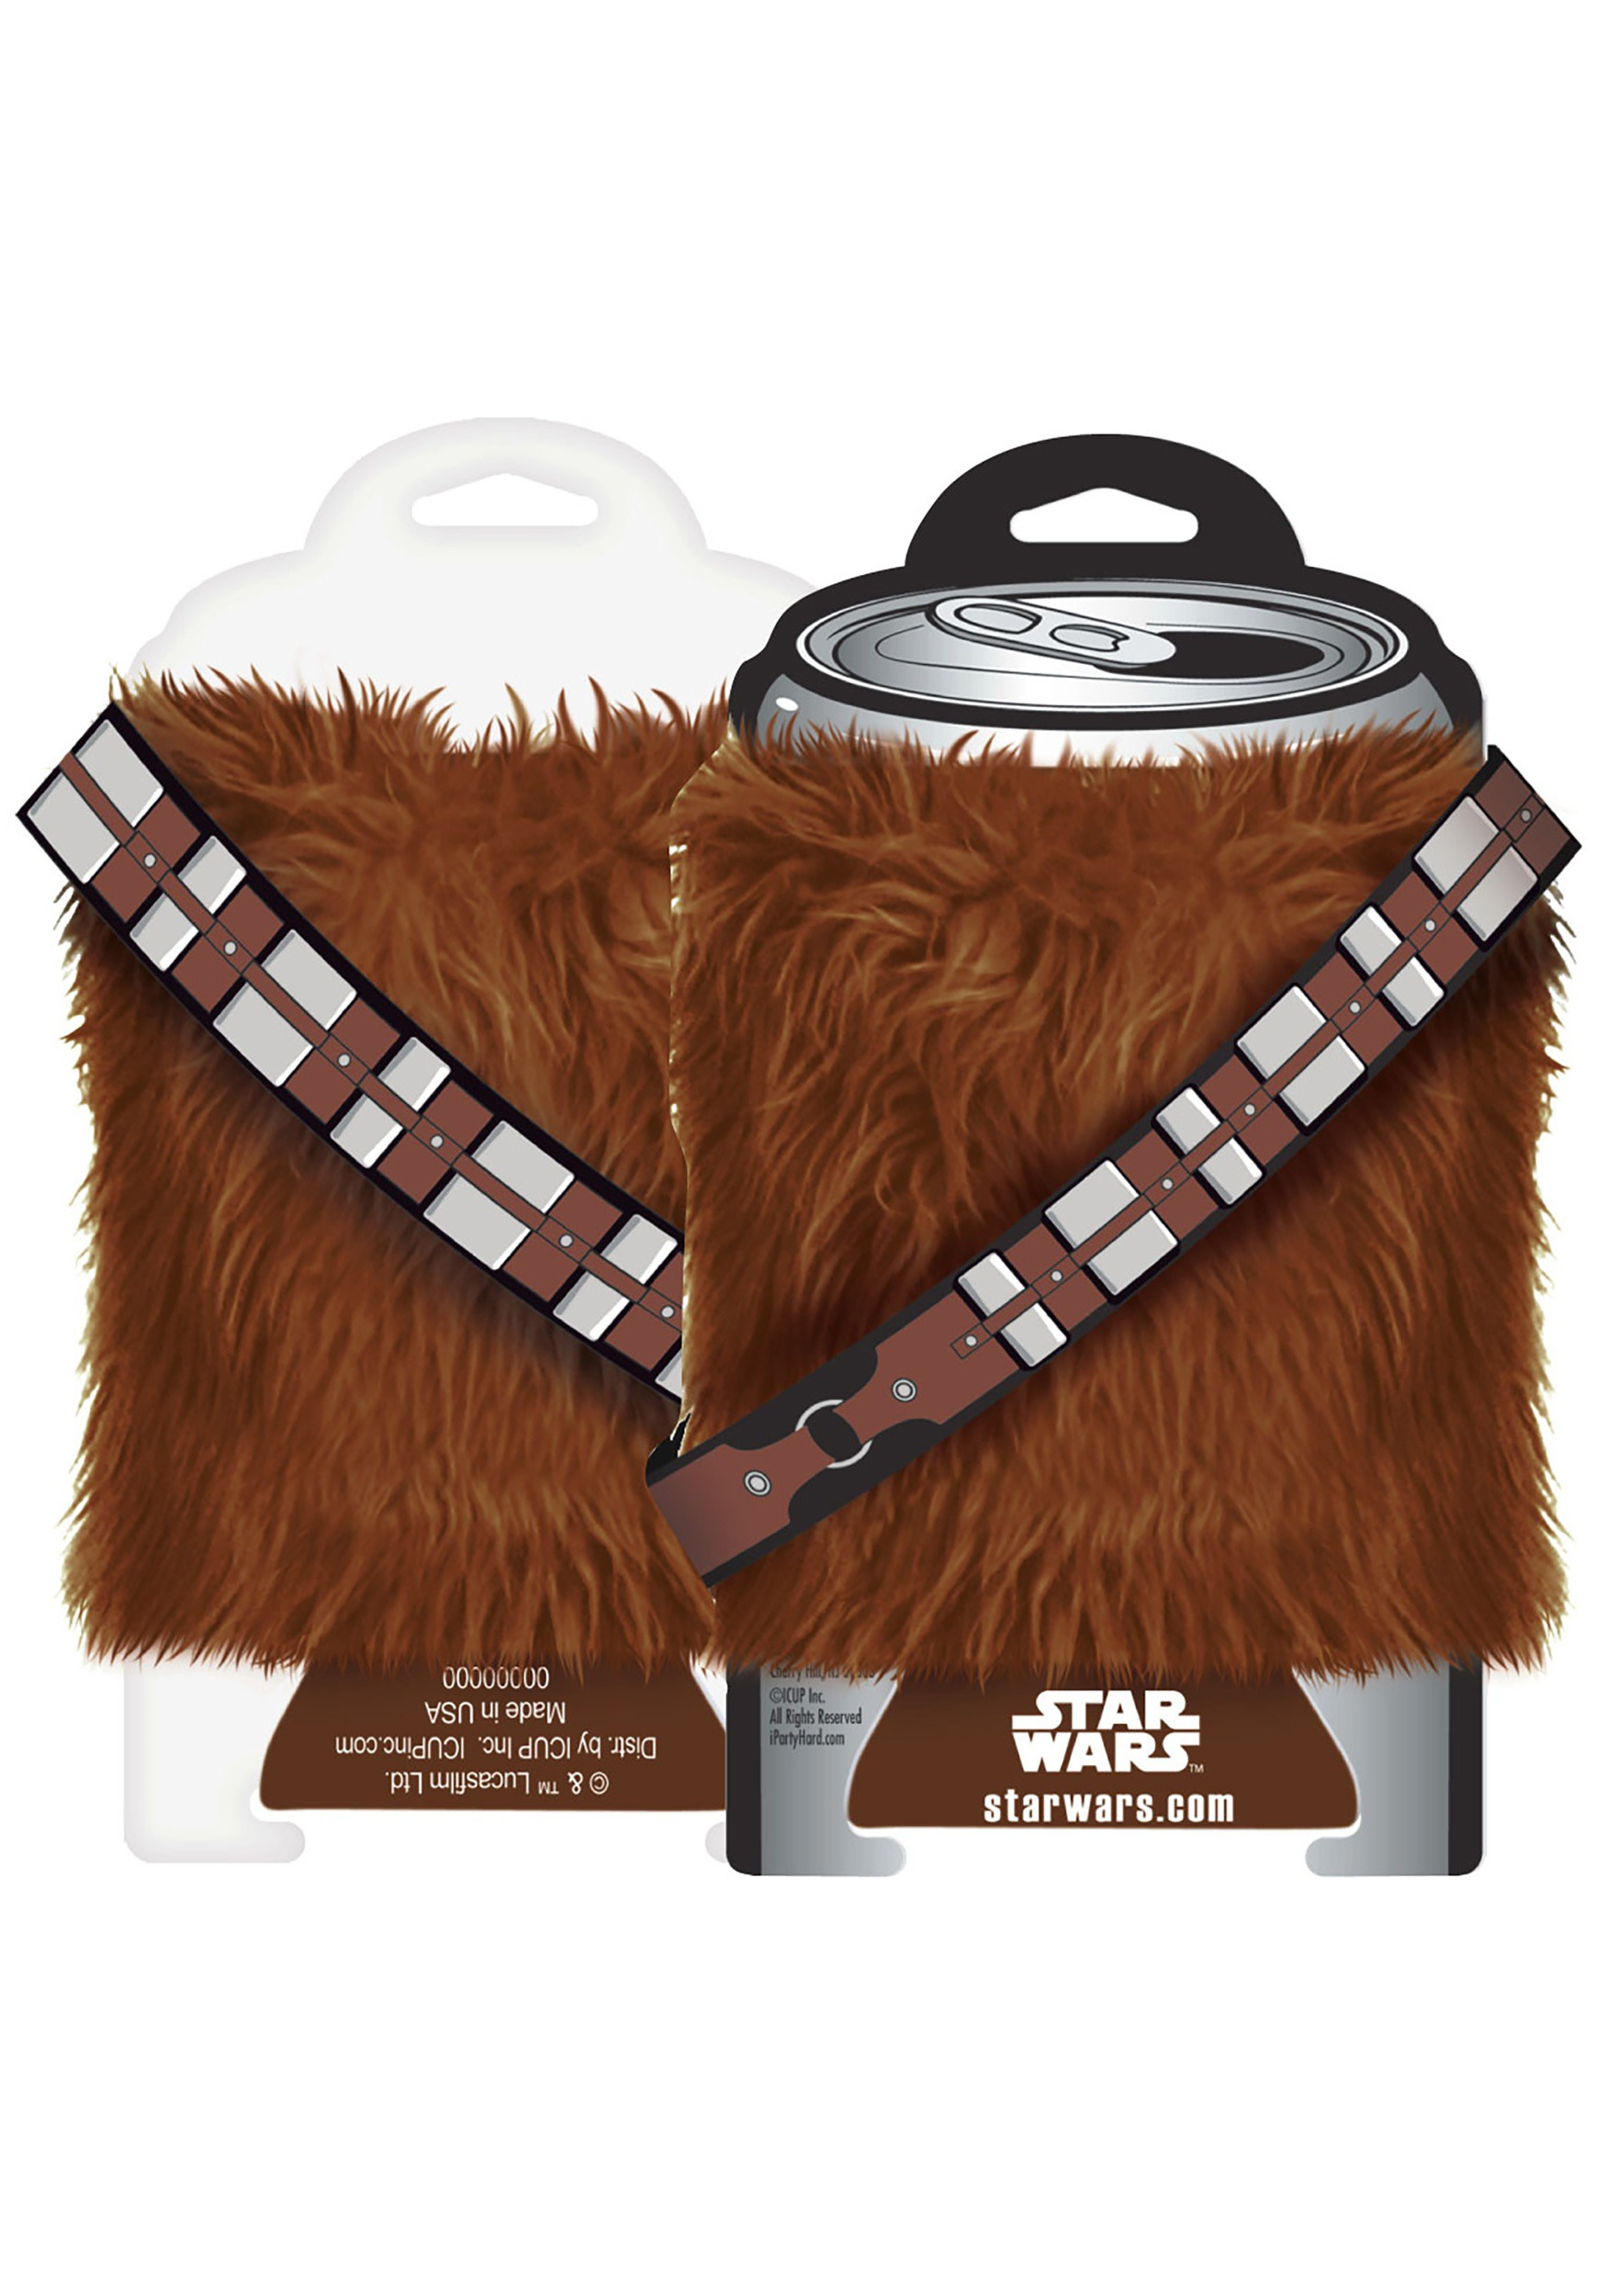 Star Wars Chewbacca Fur Can Cooler - Hoodie will turn you into chewbacca from star wars